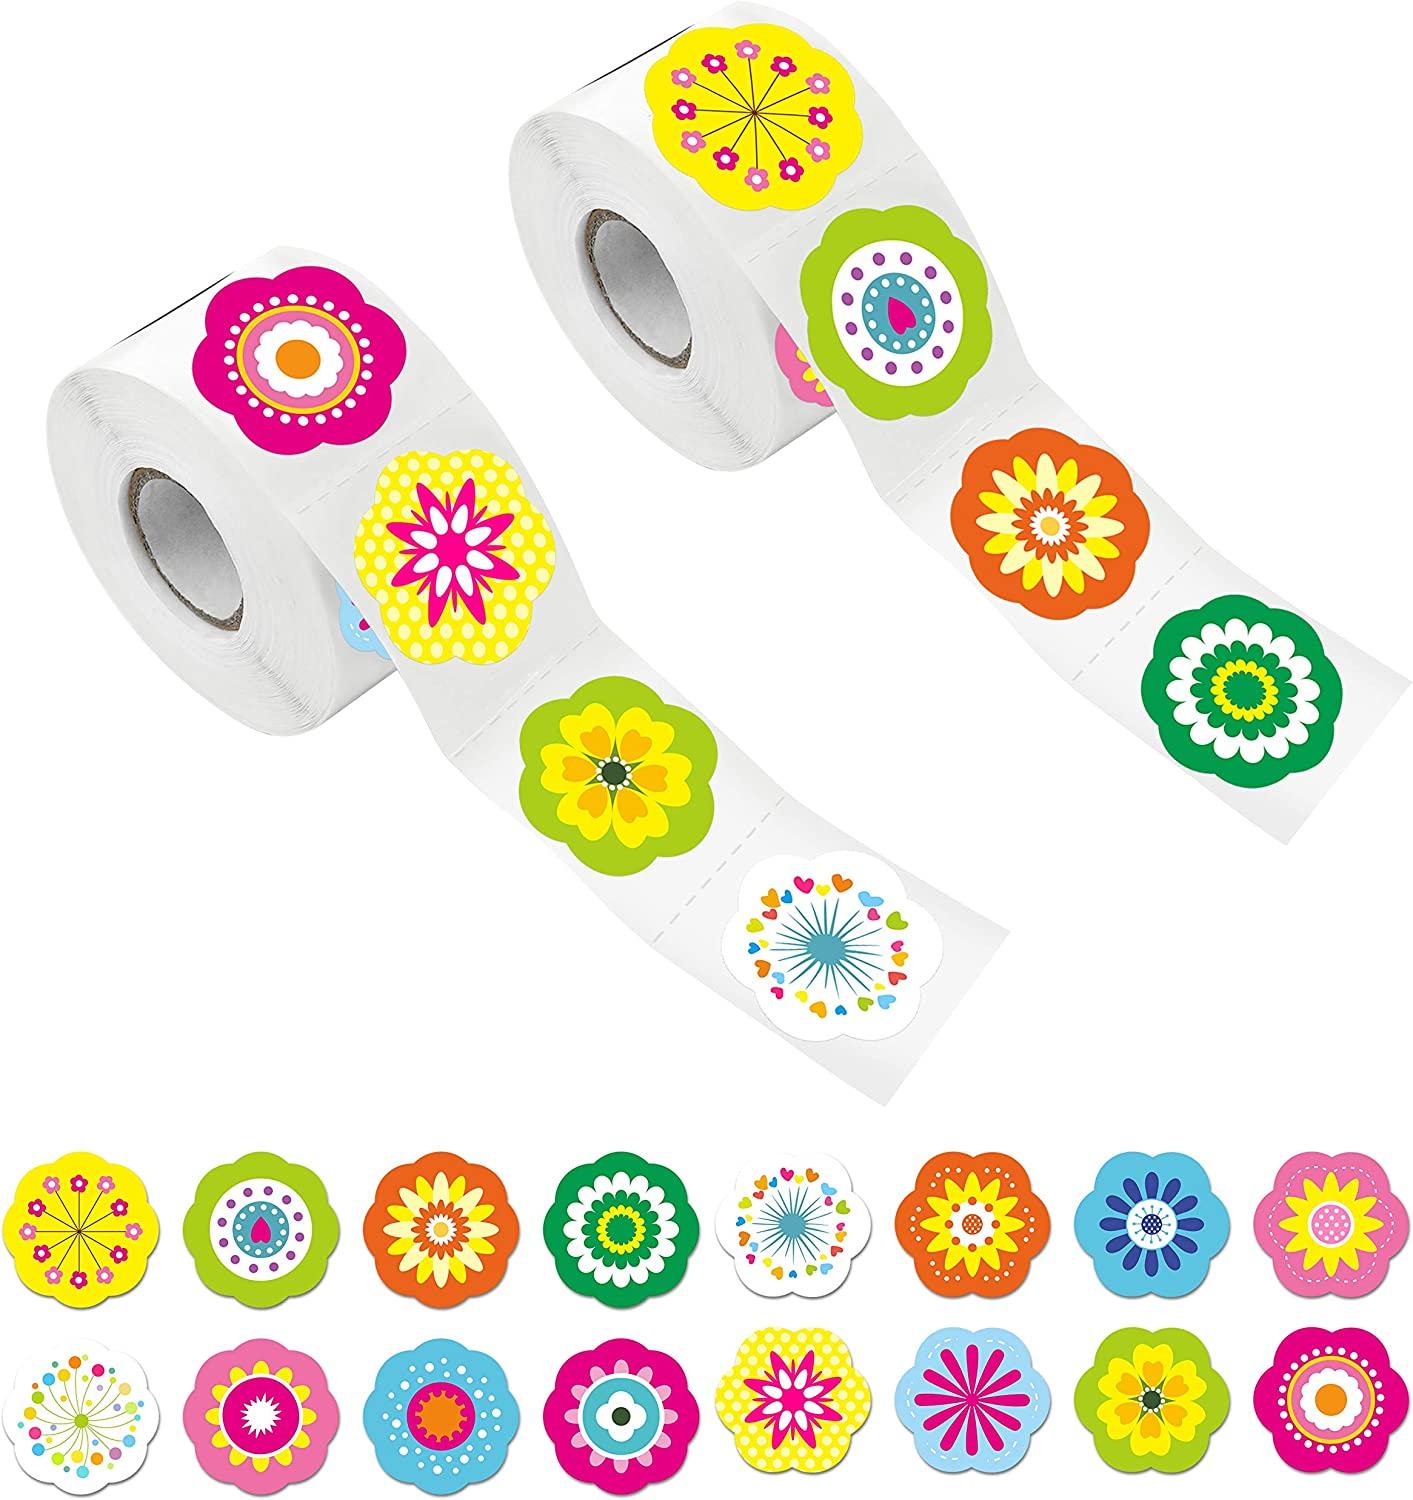 """600 PCS Adorable Flower Stickers in 16 Designs with Perforated Line Expanded Version (Each Measures 1.5"""" in Diameter)"""